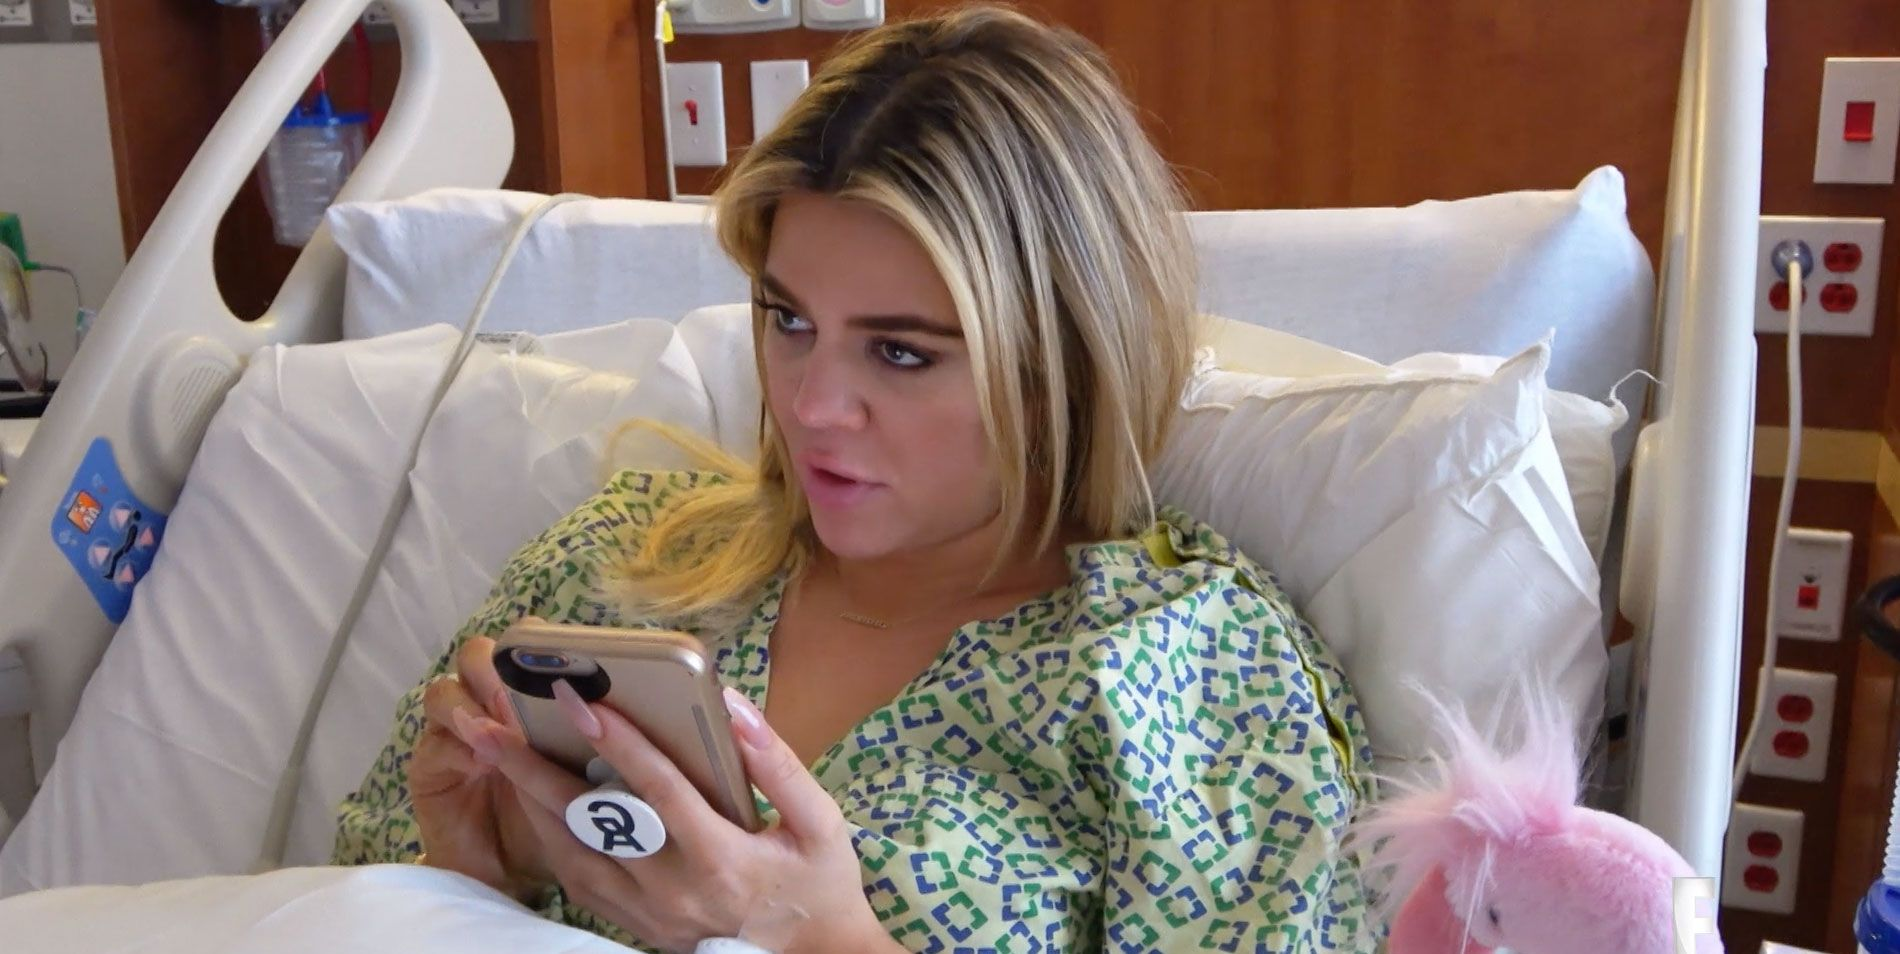 Khloé Kardashian After Giving Birth: 'Everyone Leave Me Alone'